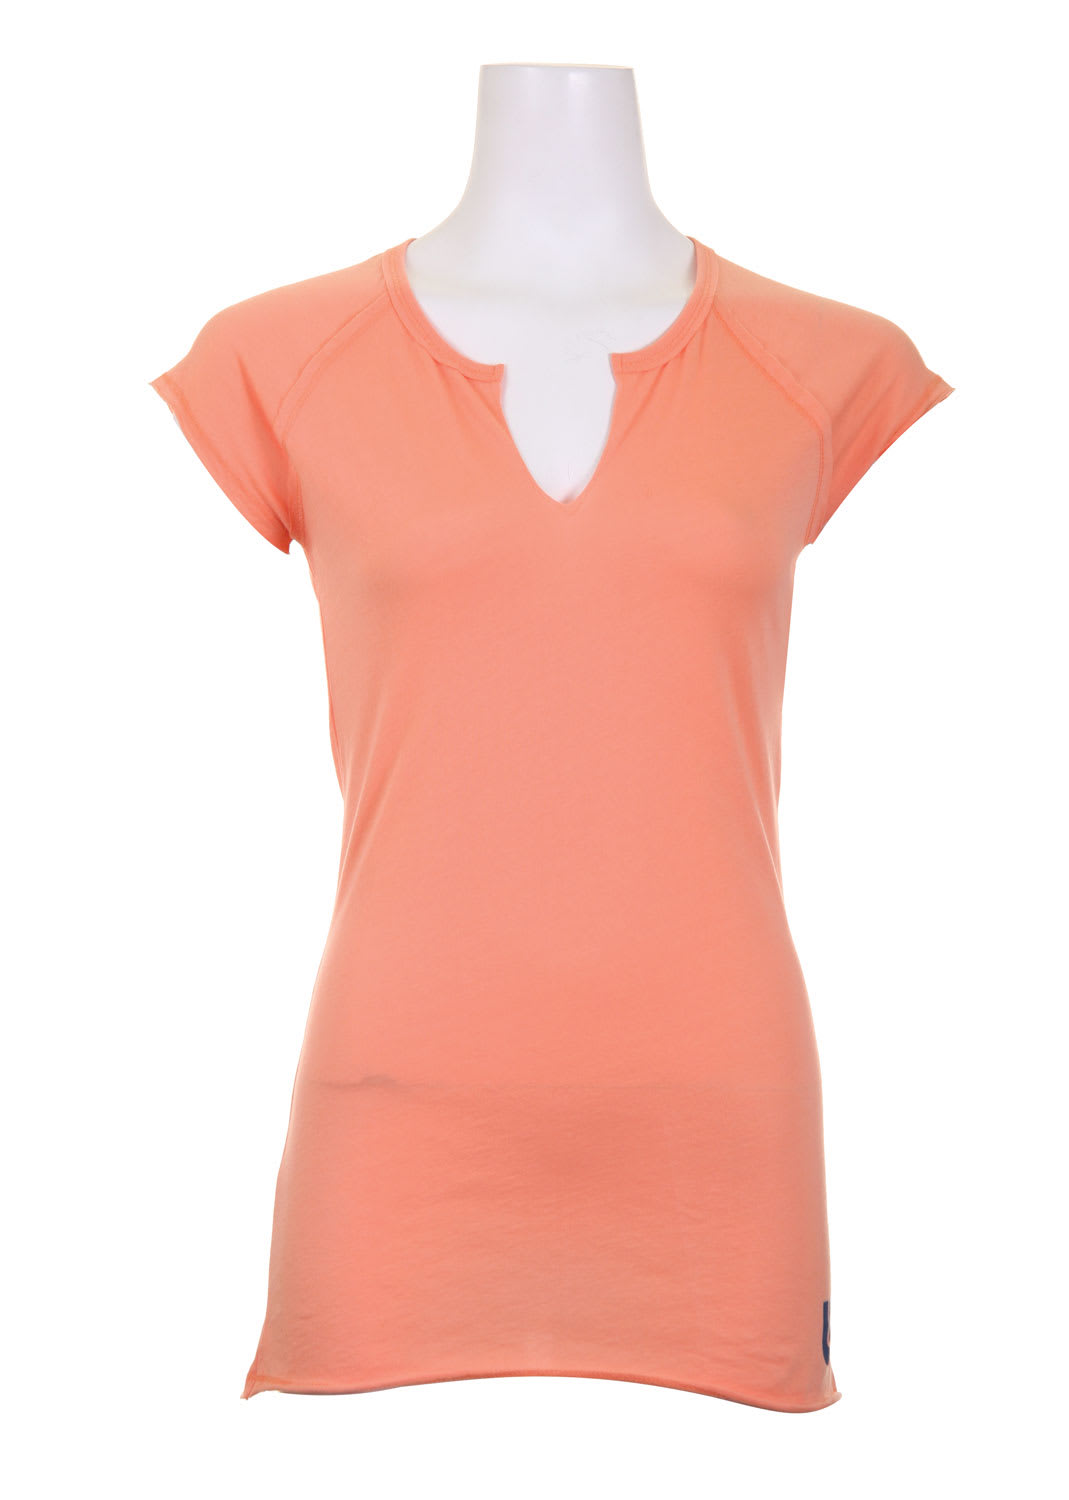 Shop for Burton Solid Raw V-Neck Creamsicle - Women's